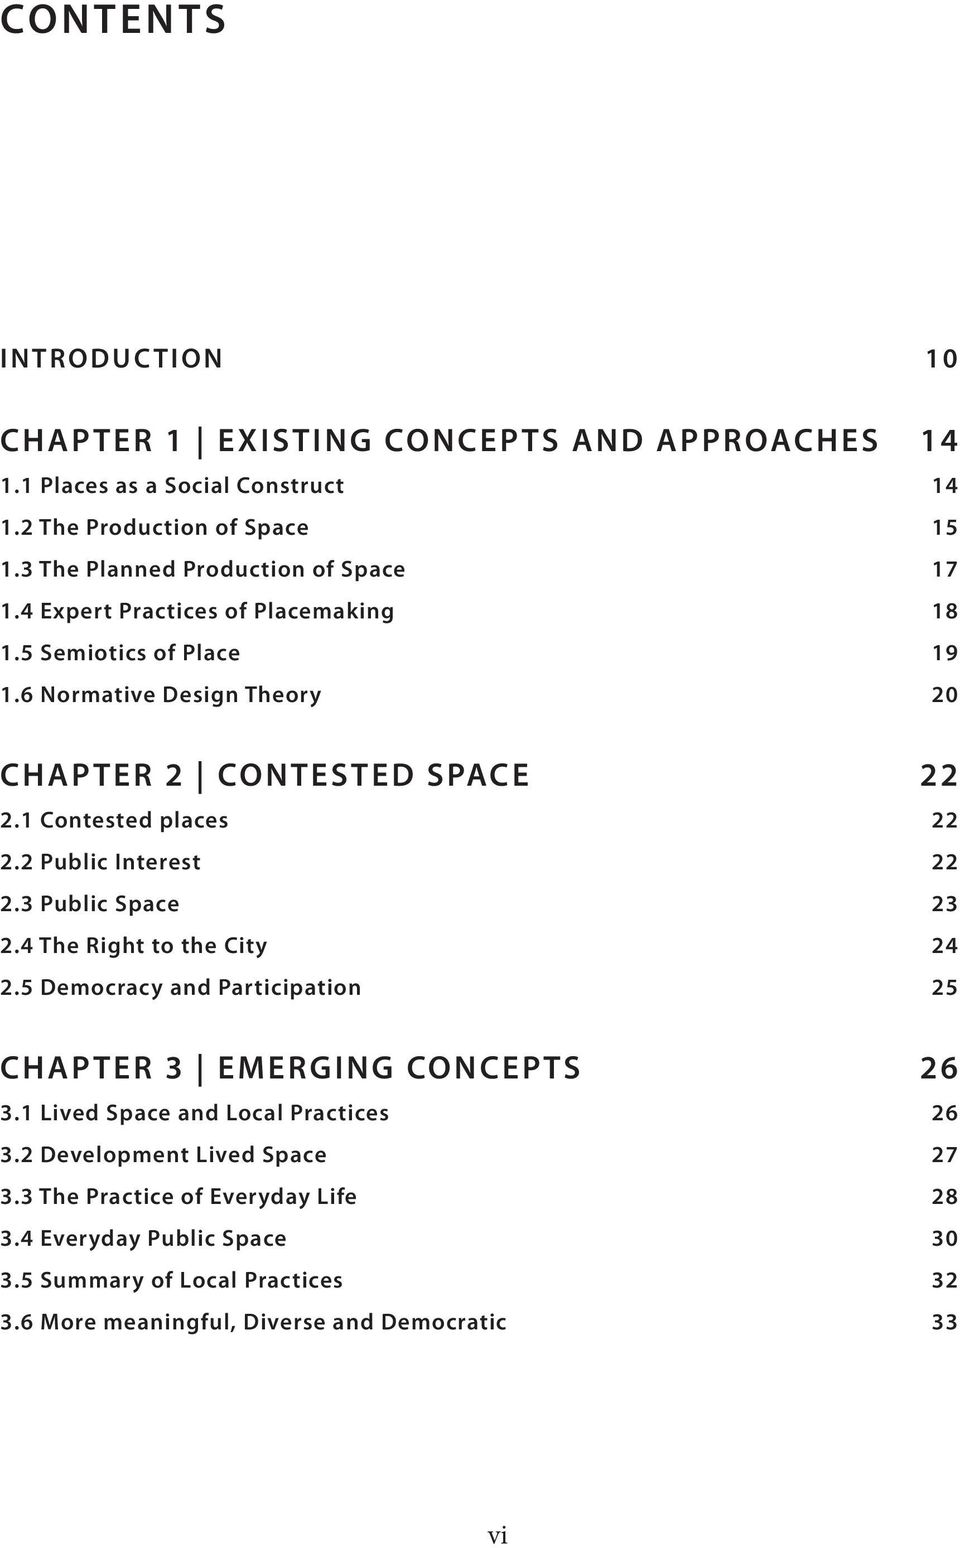 1 Contested places 22 2.2 Public Interest 22 2.3 Public Space 23 2.4 The Right to the City 24 2.5 Democracy and Participation 25 CHAPTER 3 EMERGING CONCEPTS 26 3.